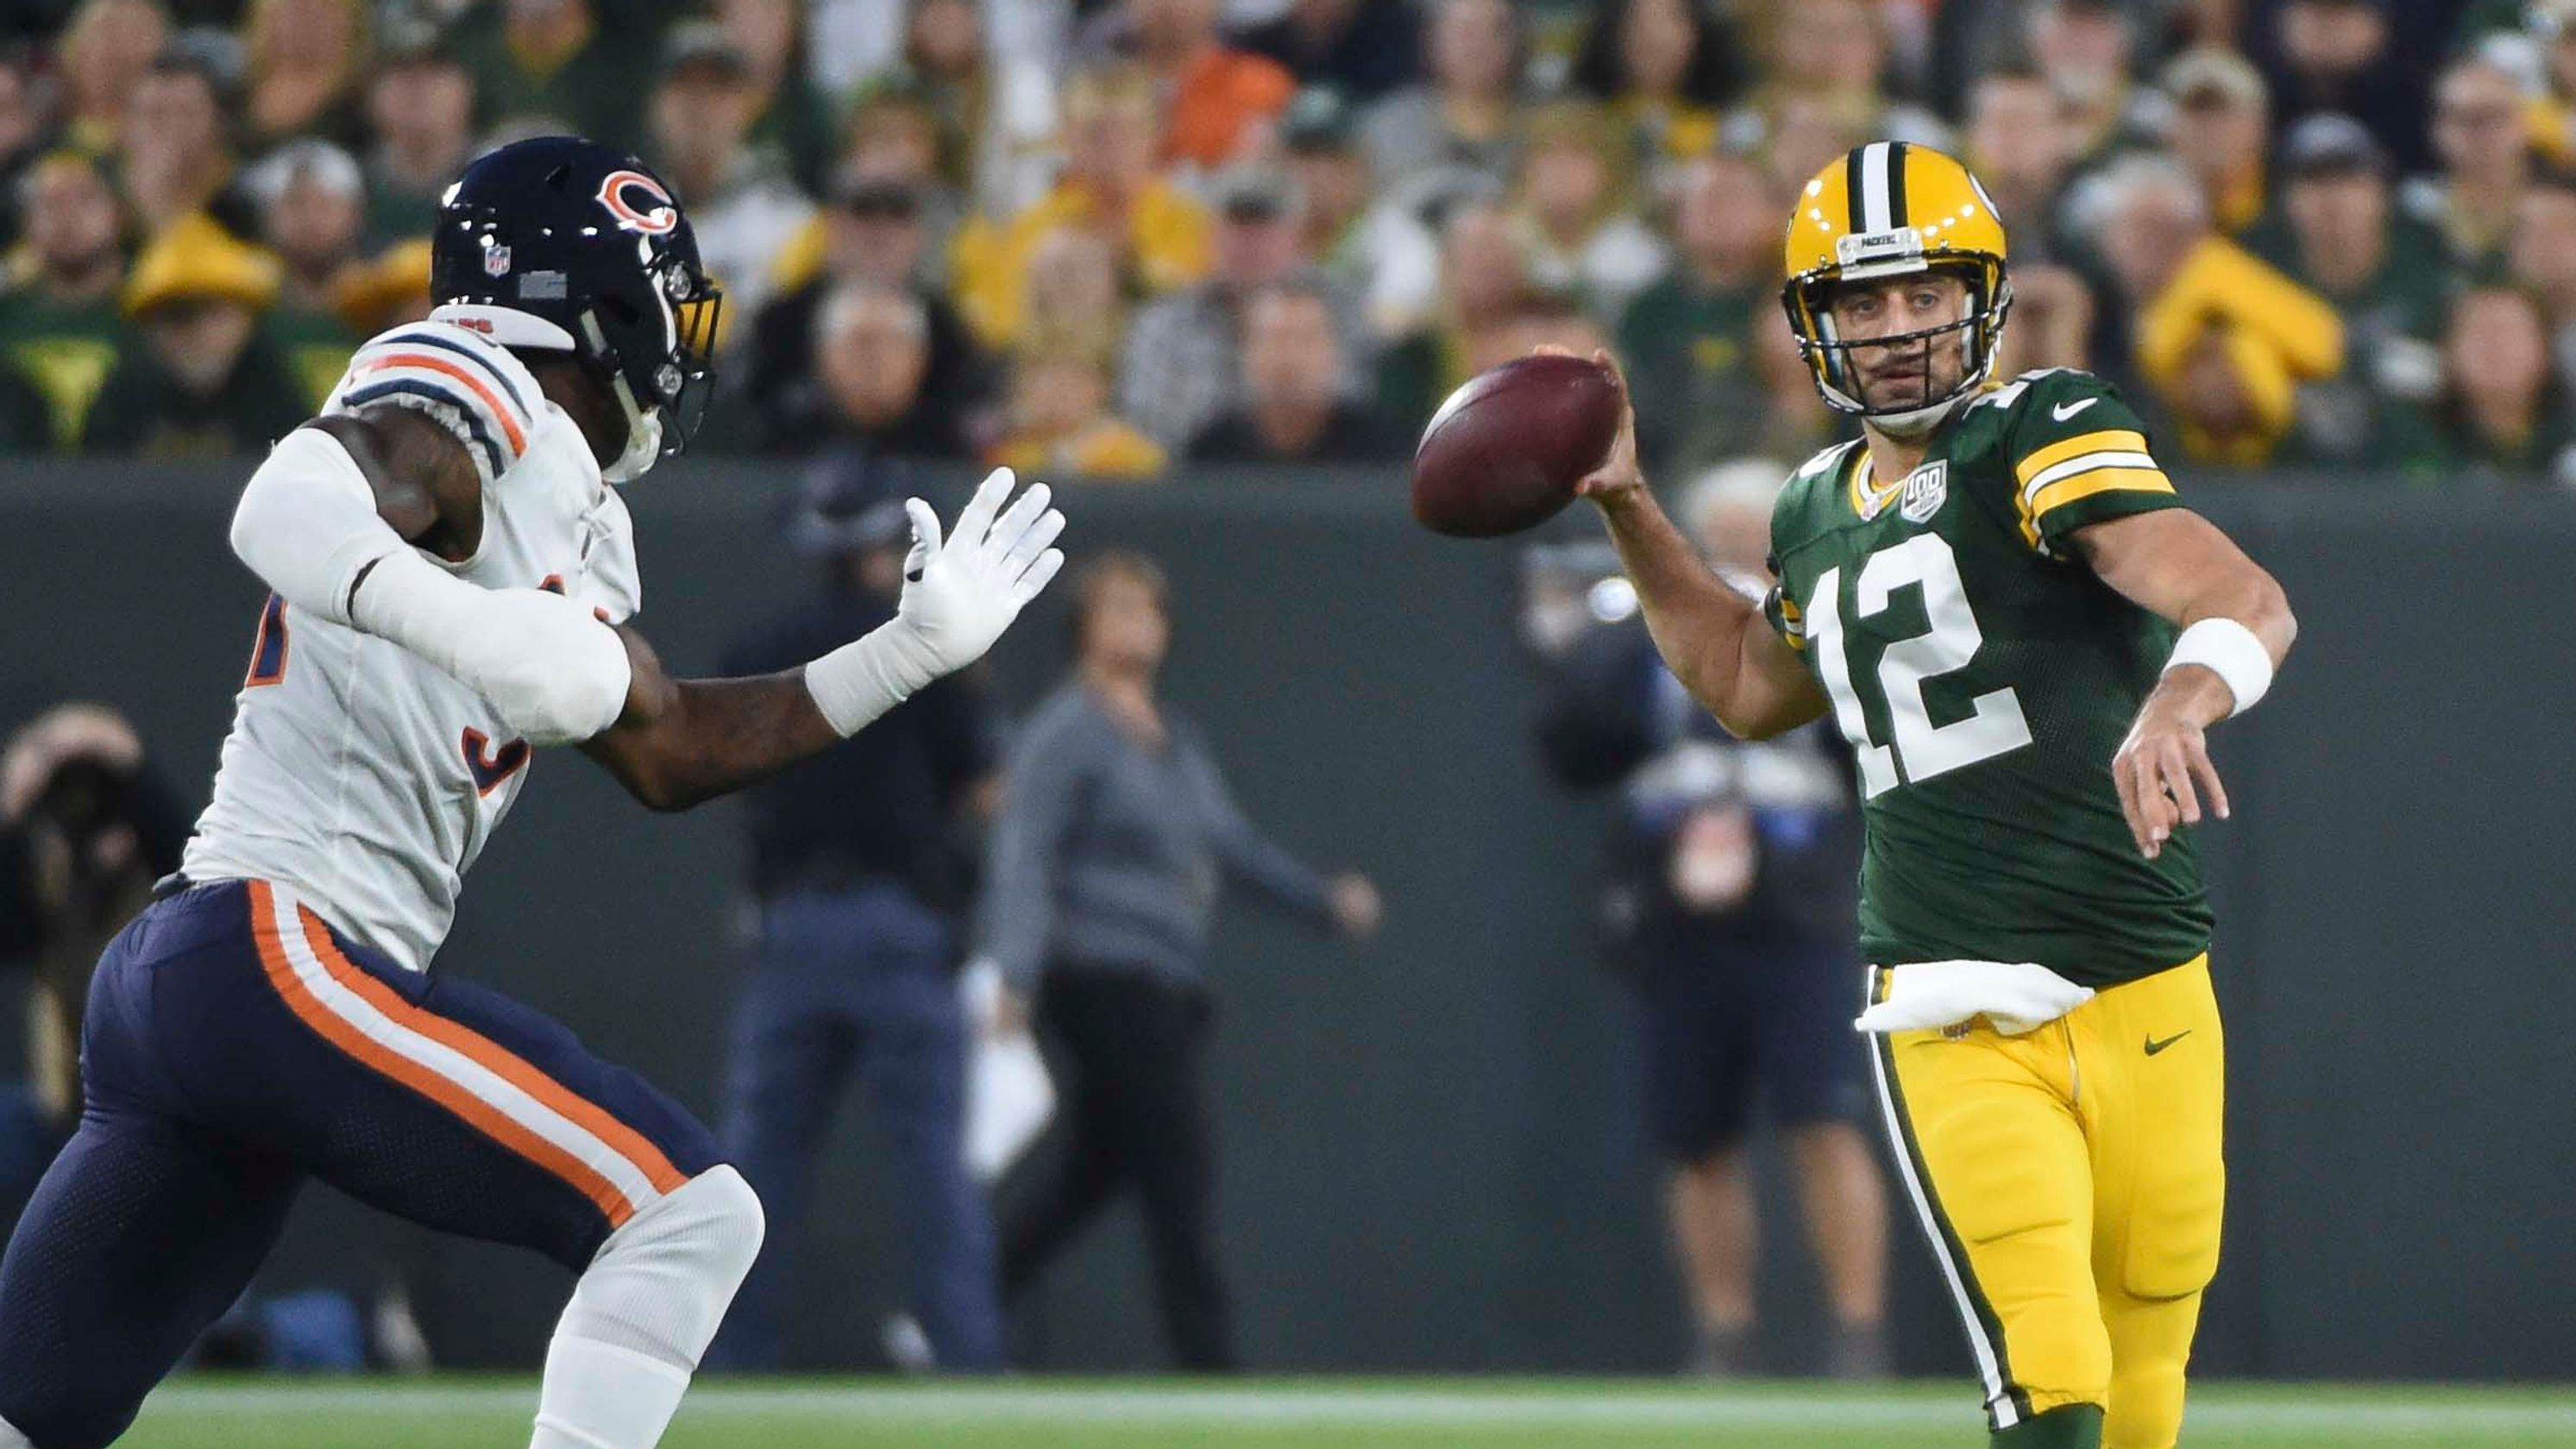 Packers vs Bears to Kick-Off NFL's 100th Season